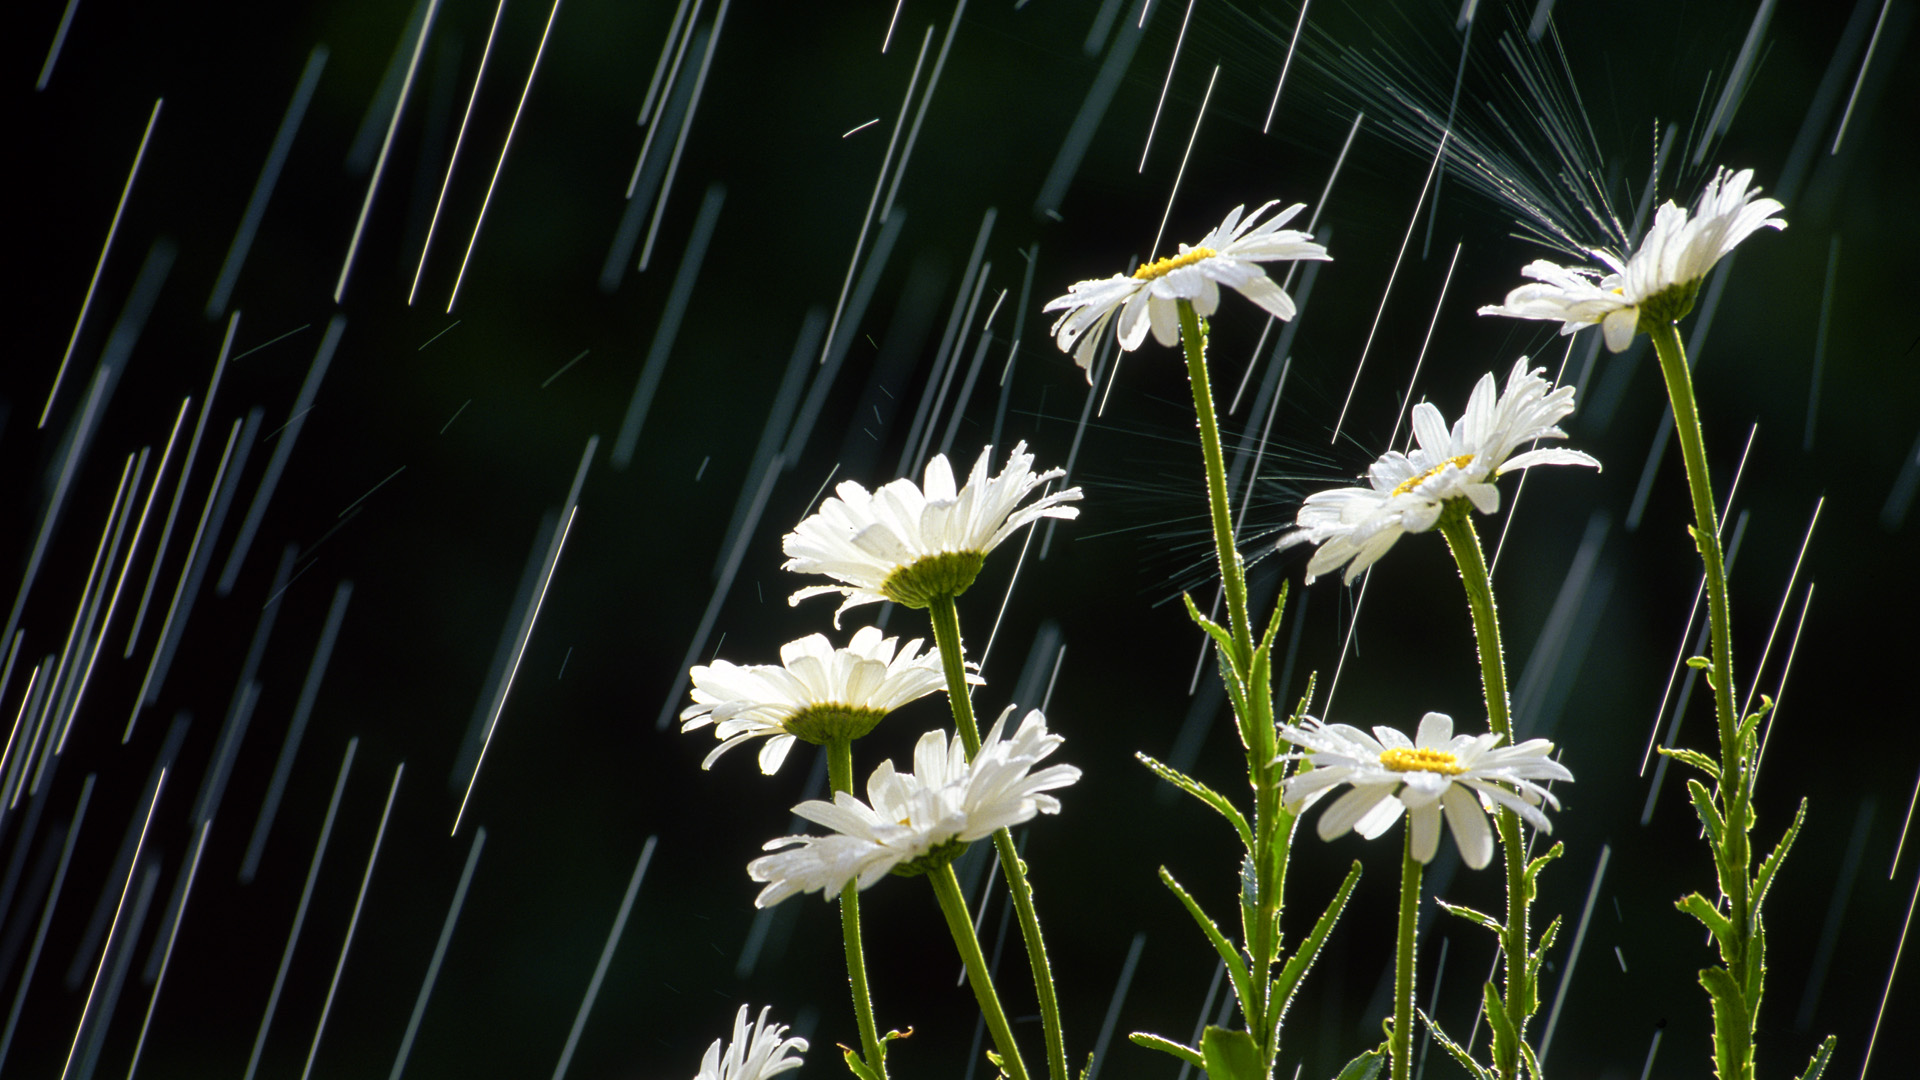 Rain full hd wallpaper and background image 1920x1080 id312336 photography rain flower nature wallpaper altavistaventures Image collections